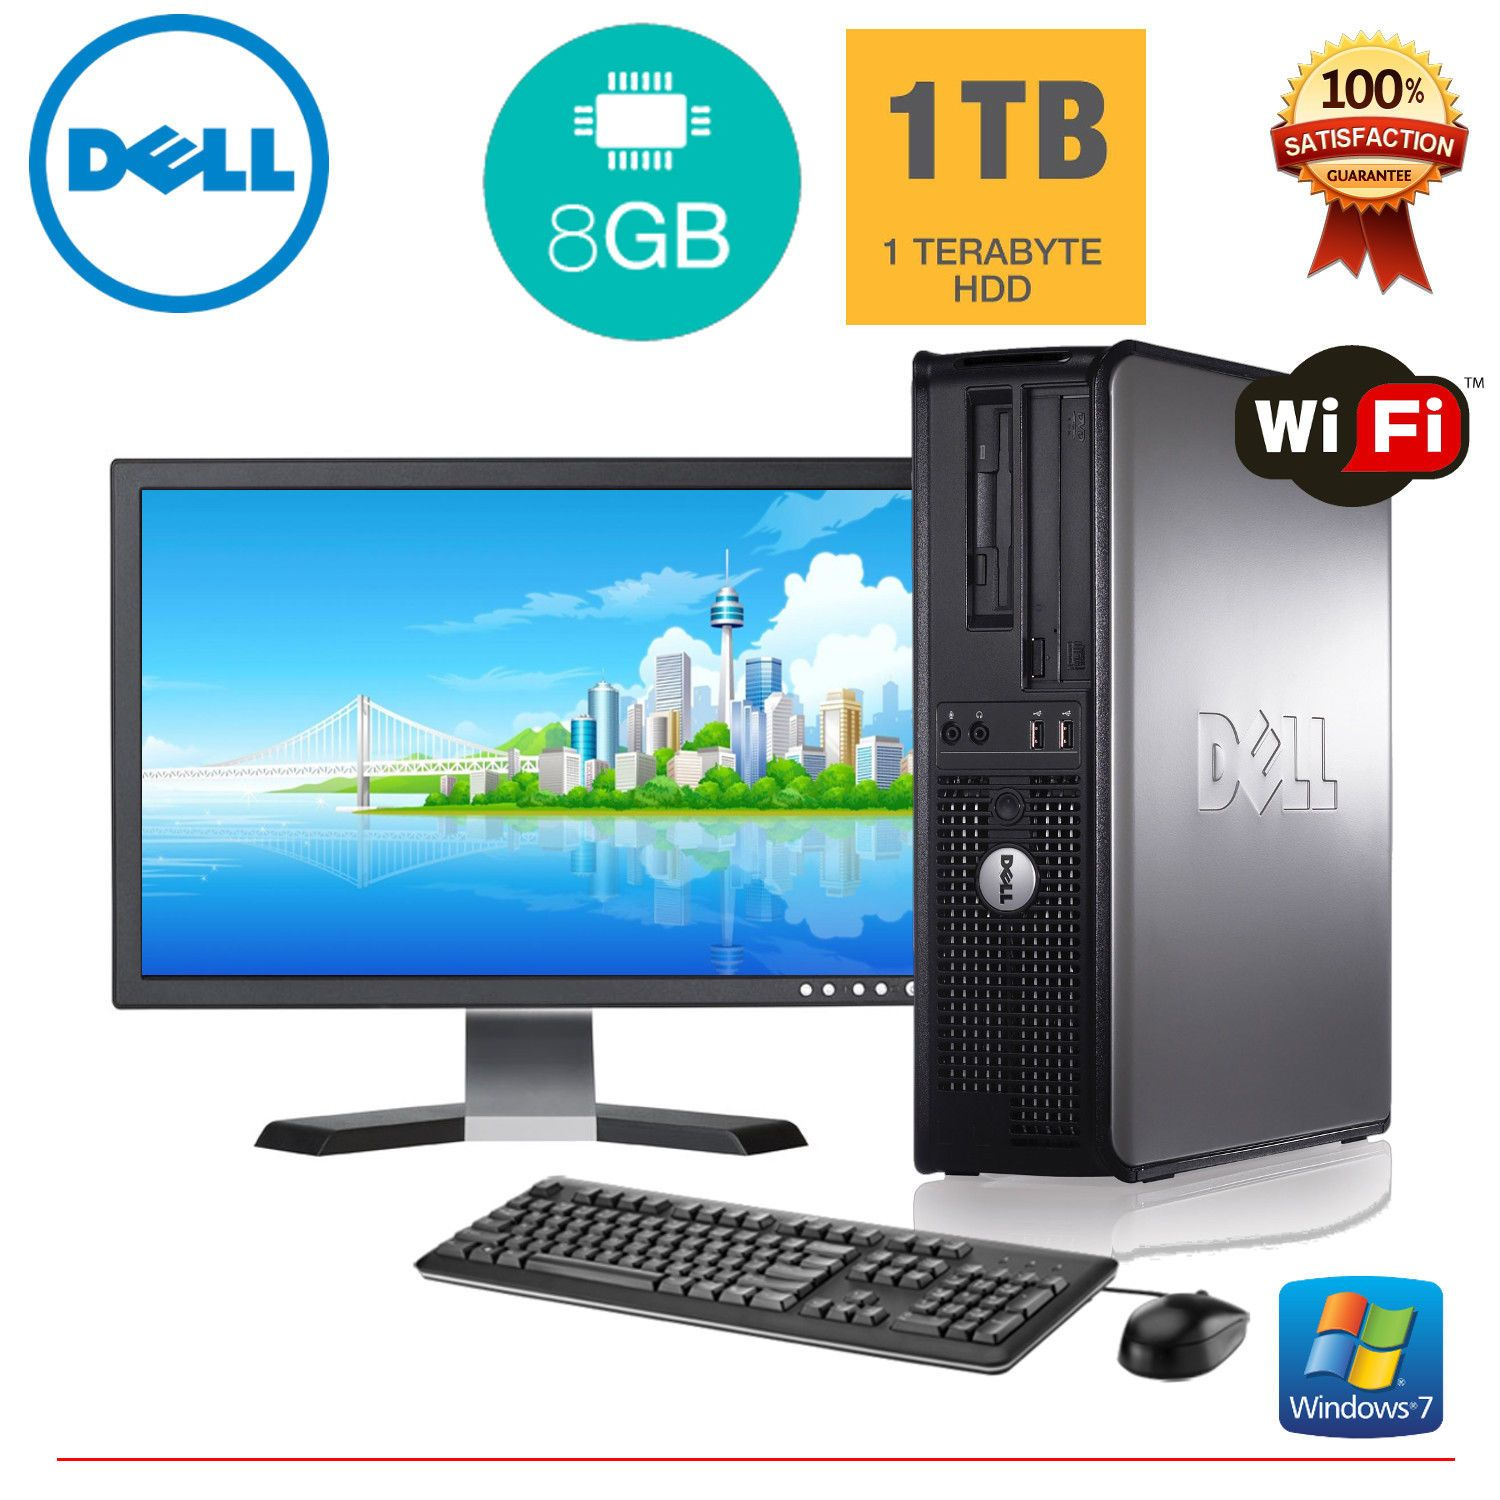 Nice Dell Desktop Pc Computer Windows 7 Core 2 Duo 8gb Ram 1tb Hd 19 Monitor Wifi Check More At Http Harmonispro Computer Dell Desktop Hp Computer Laptops